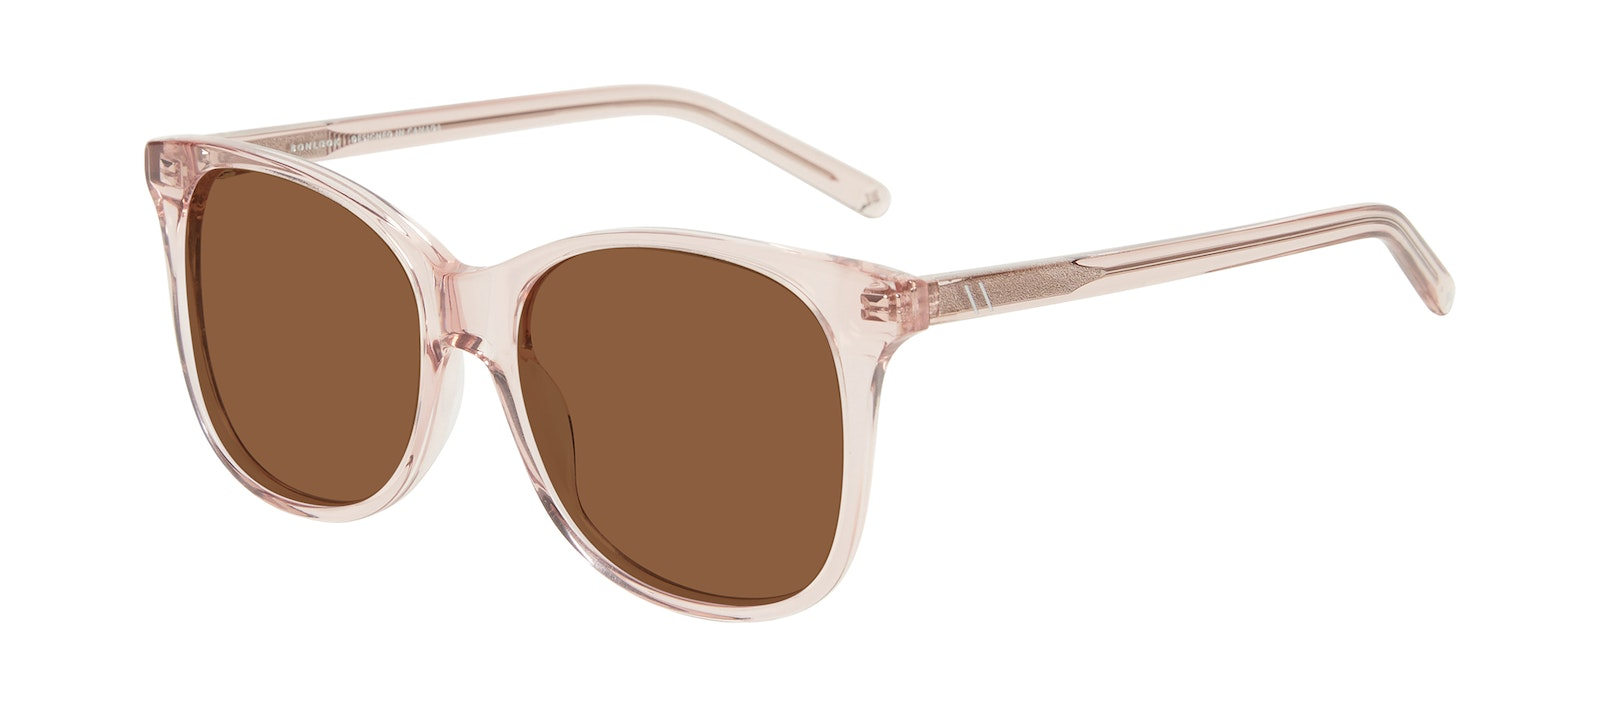 Affordable Fashion Glasses Square Sunglasses Women Bloom Pink Tilt